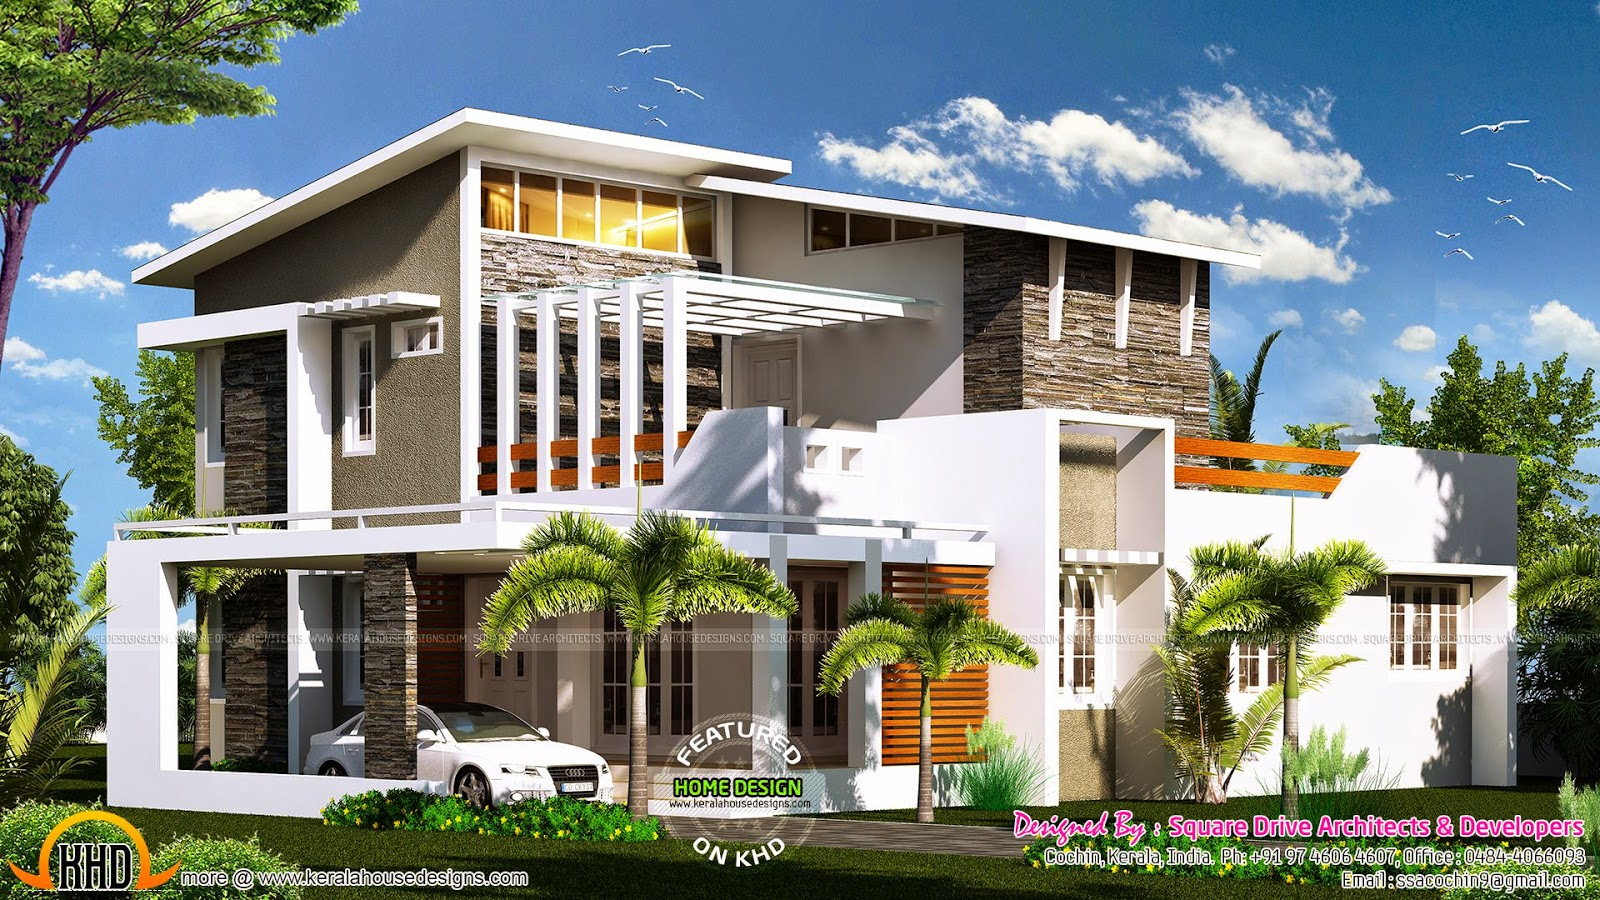 2000 sq ft modern contemporary house plan kerala home design and floor plans - Contemporary house designs ...